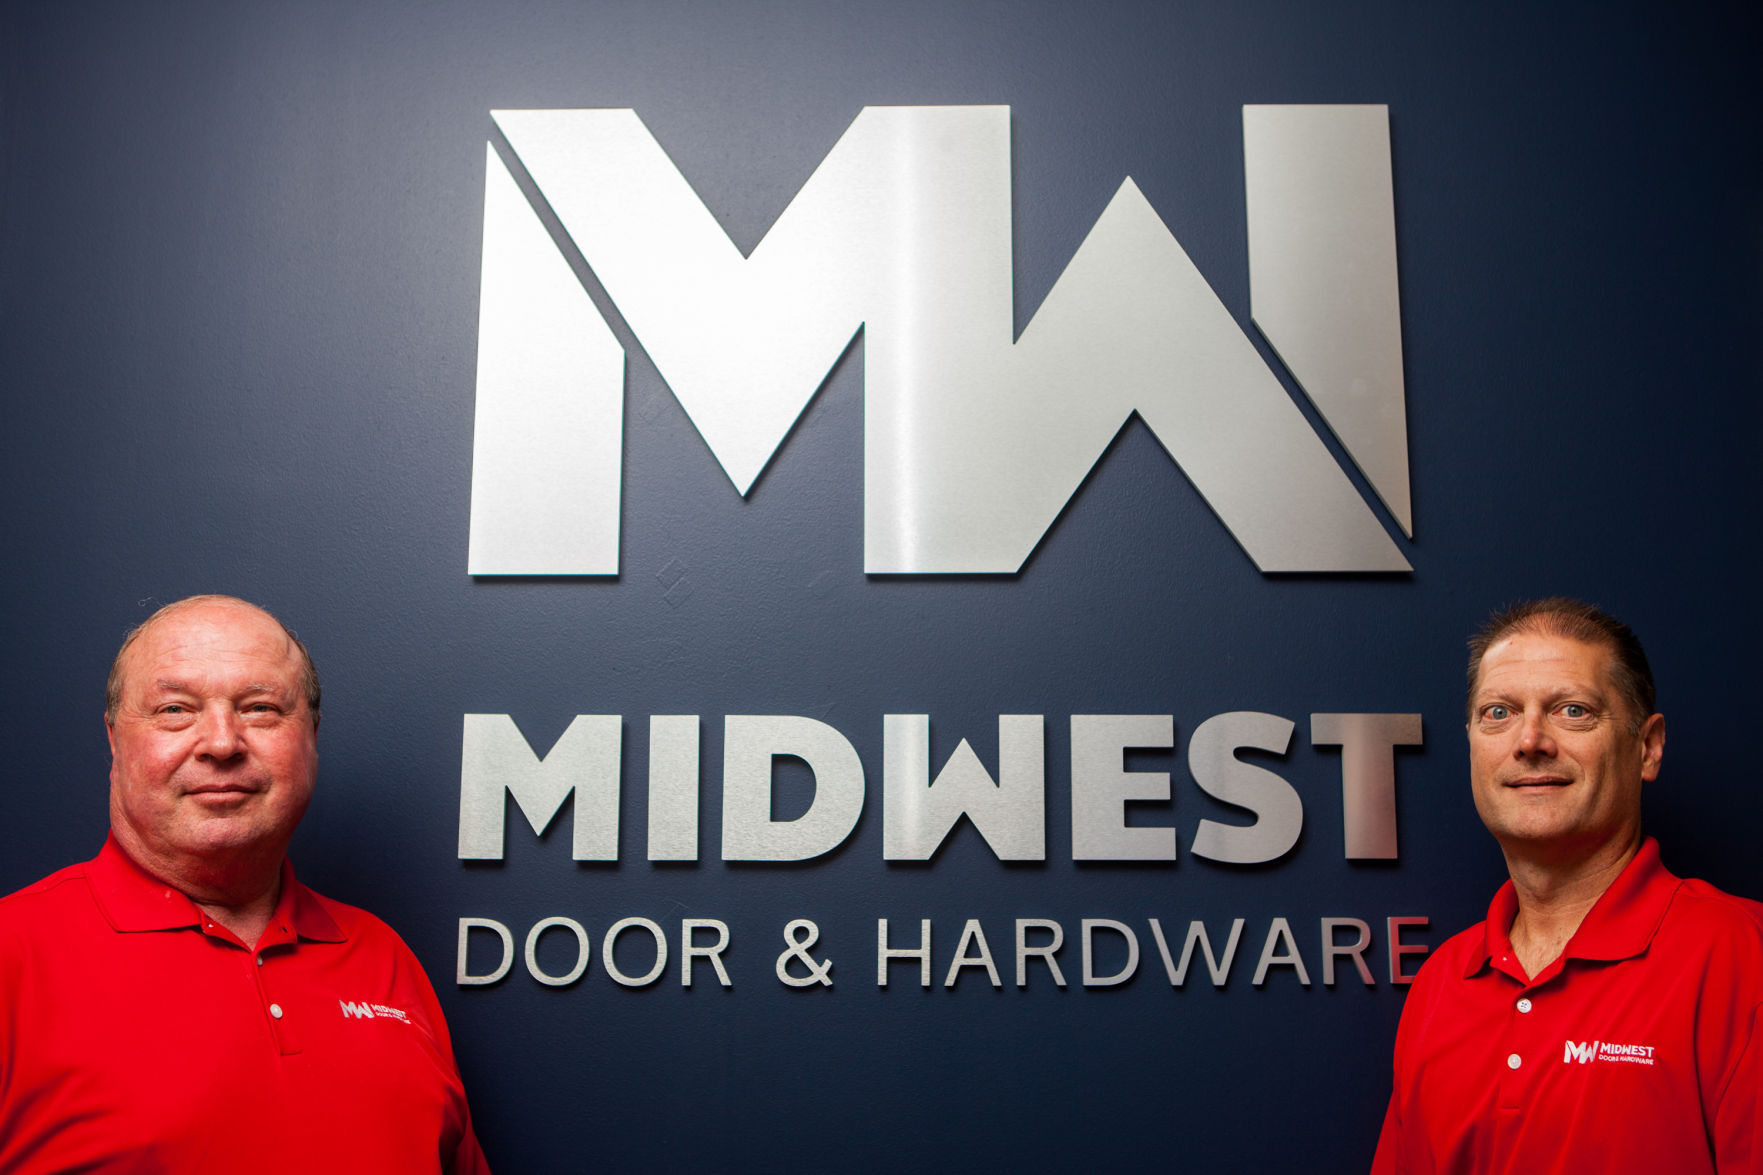 Midwest Door and Hardware New owner expansion